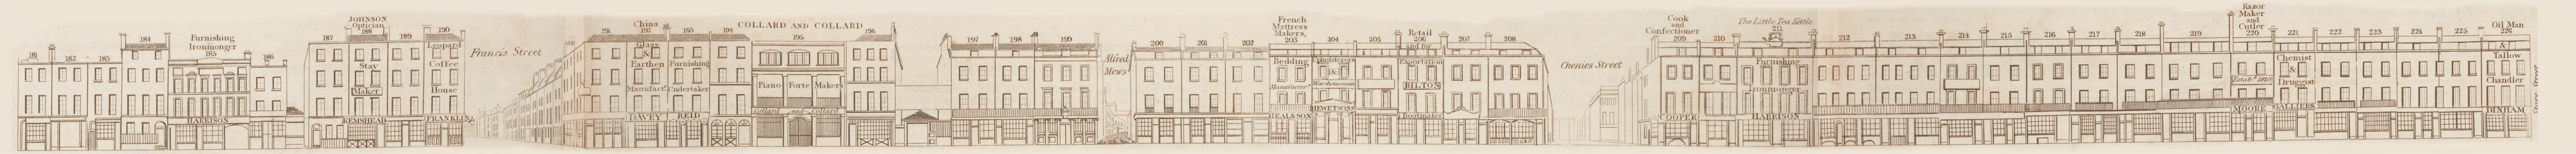 map - Tallis's London street views : No. 52. Tottenham Court Road, division 2 (east)